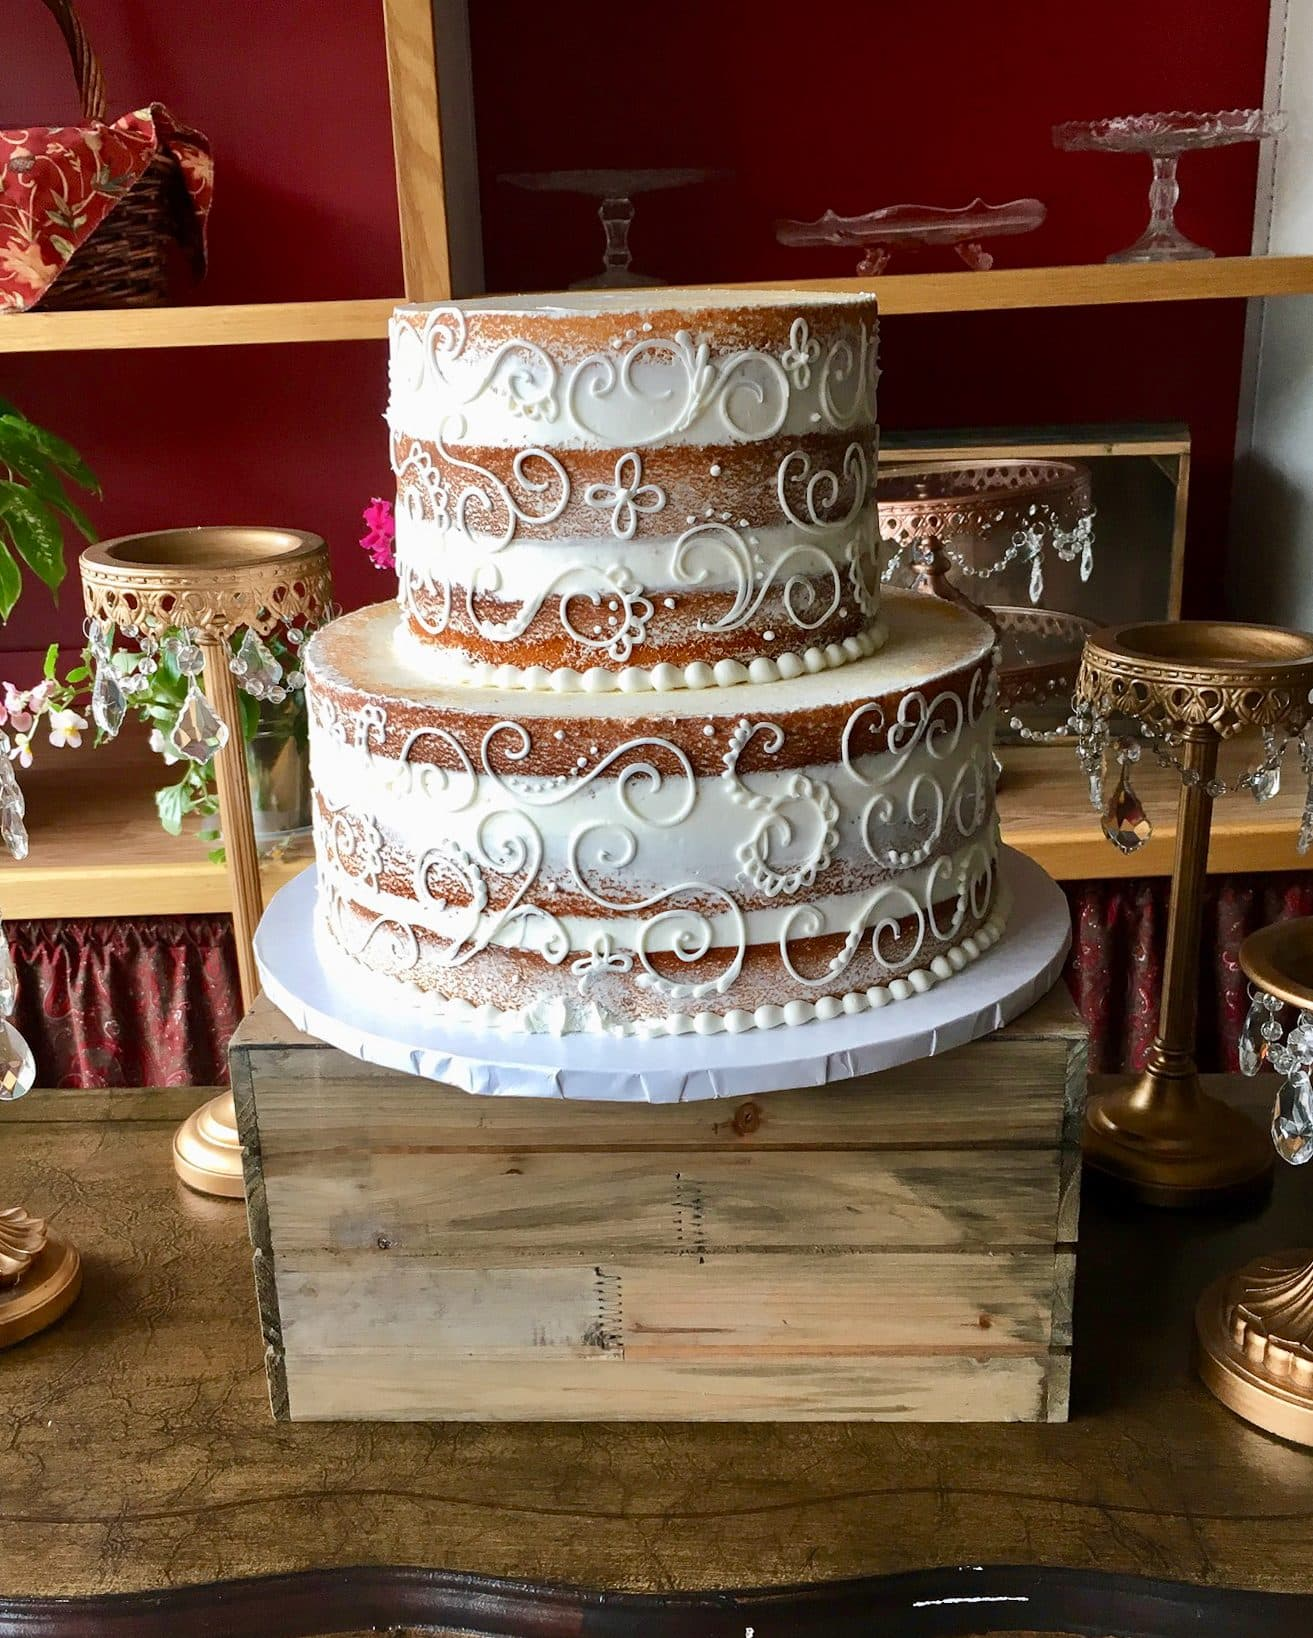 2 Tier Naked Cake with Piping